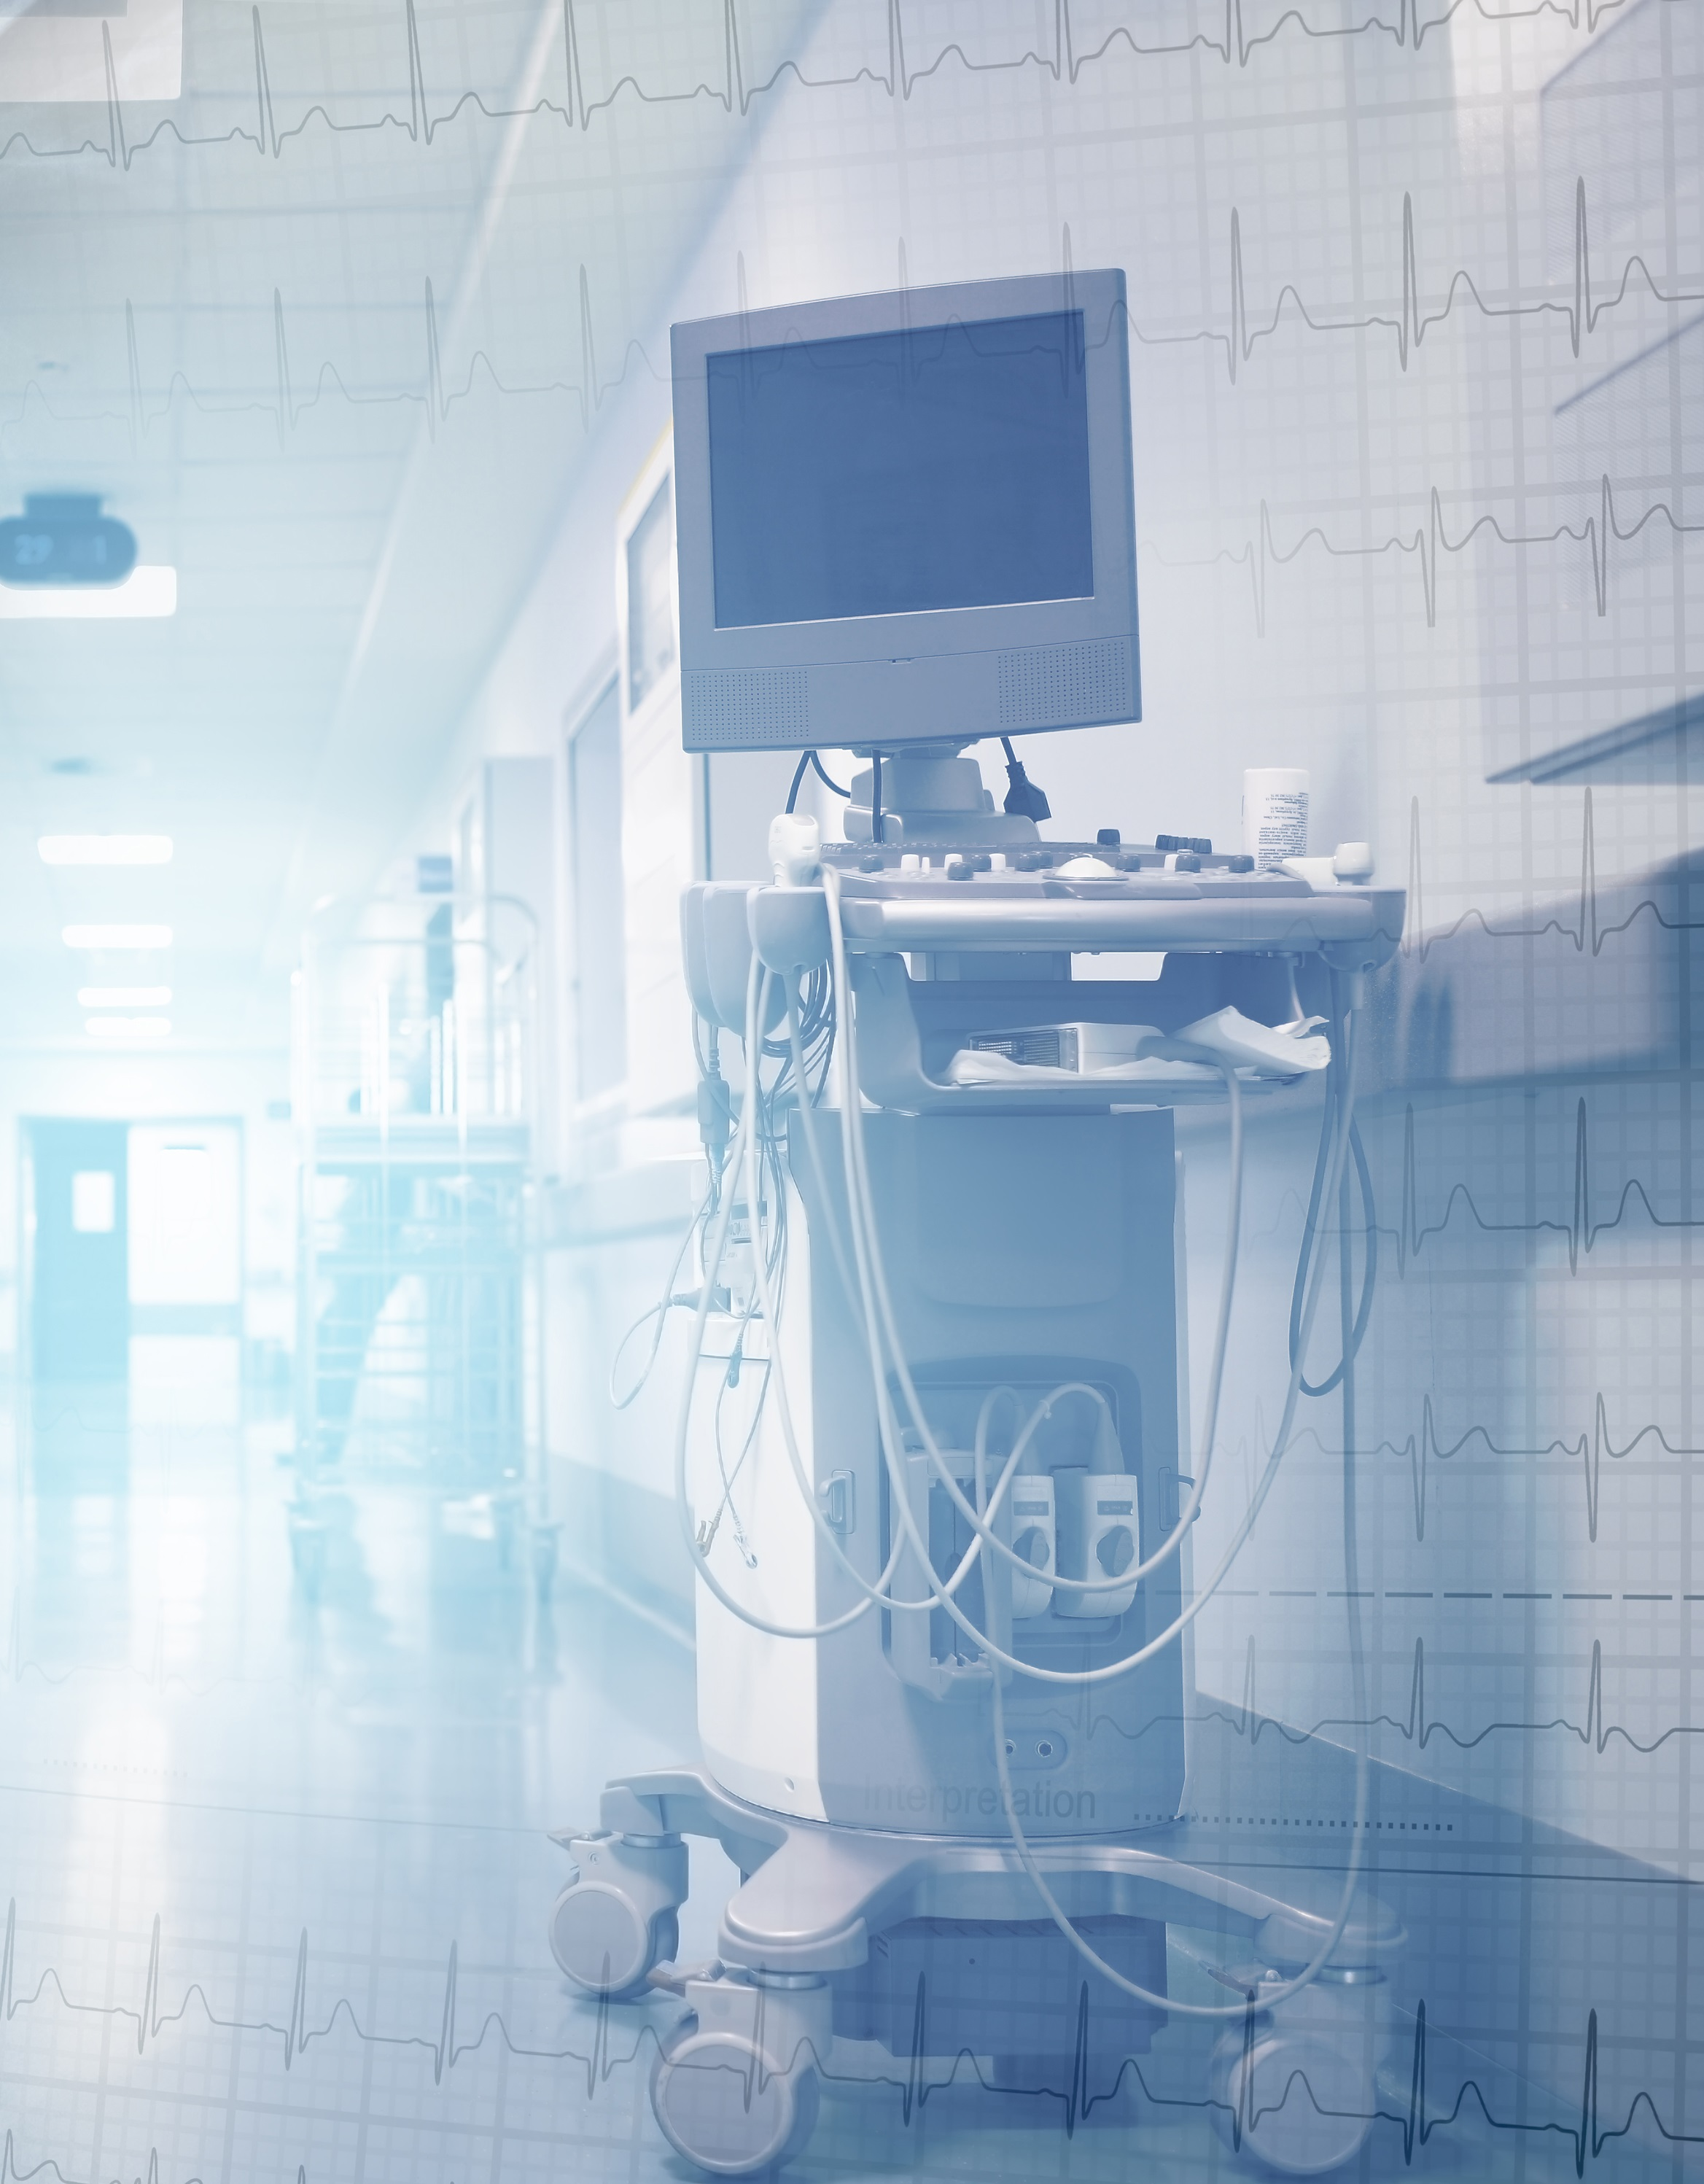 hospital device with monitor